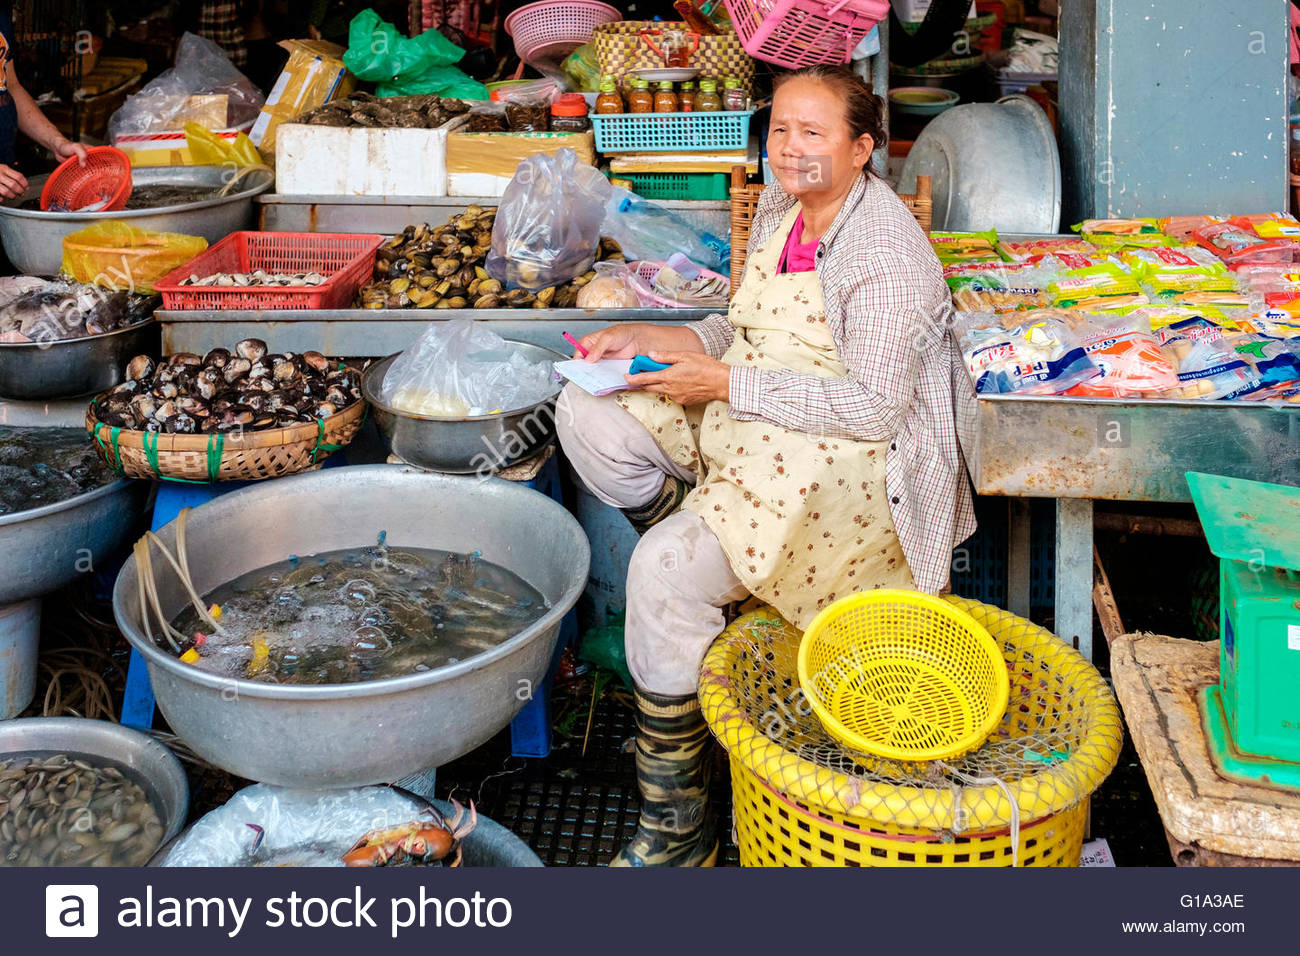 Woman in her stall selling fresh and live seafood at Central Market, Phnom Penh, Cambodia - Stock Image